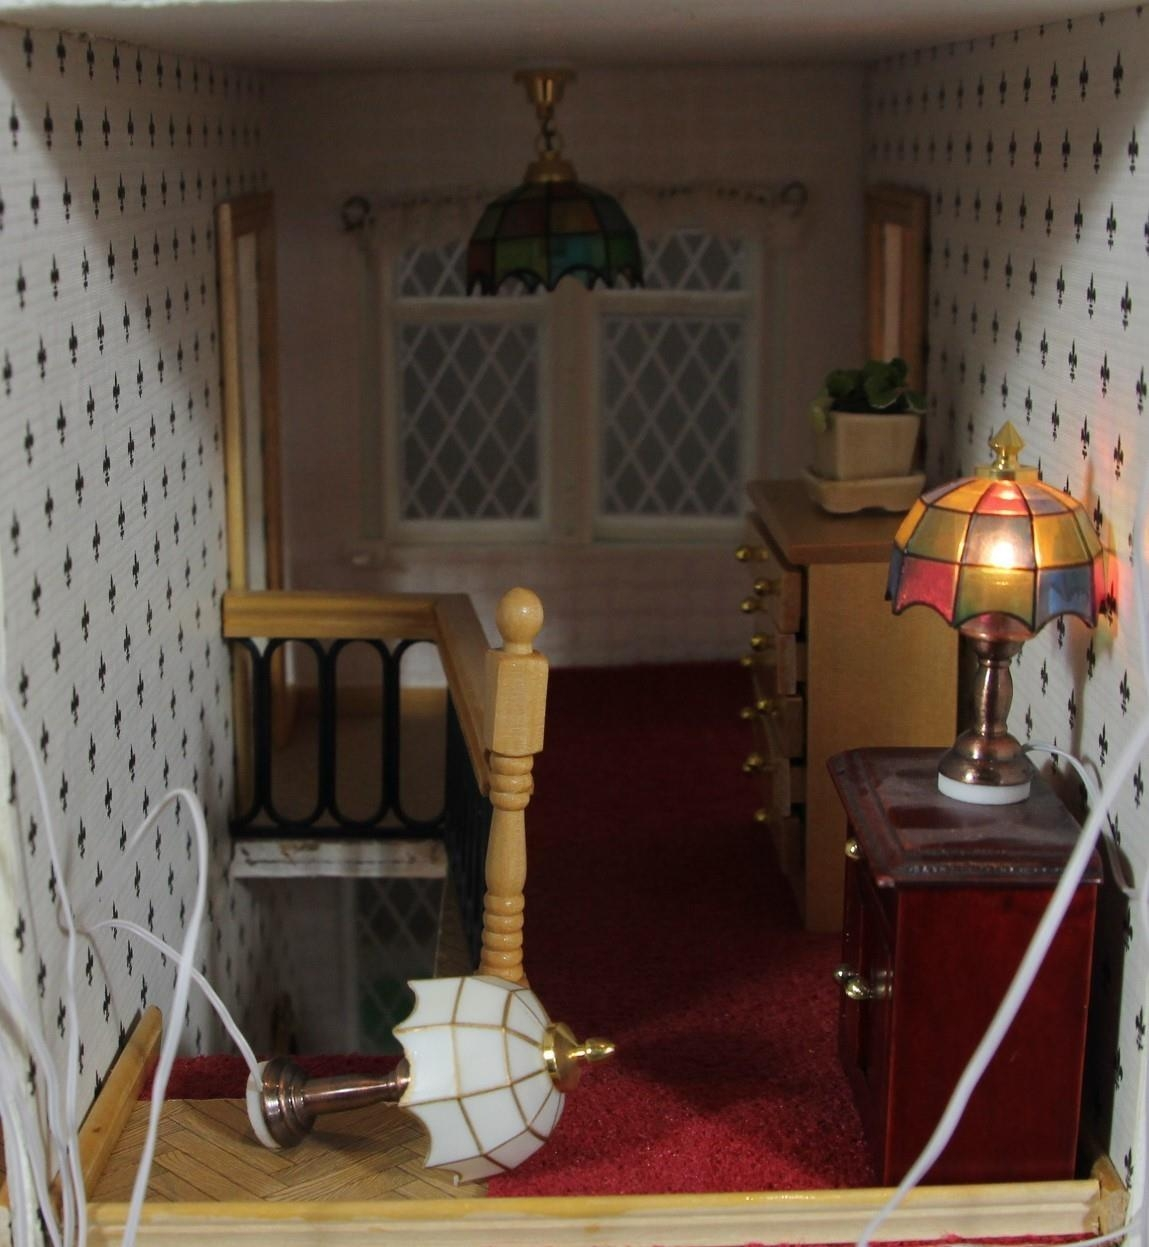 A large hand built dolls house diorama, composed of a two story chalet type house with integral - Image 5 of 20